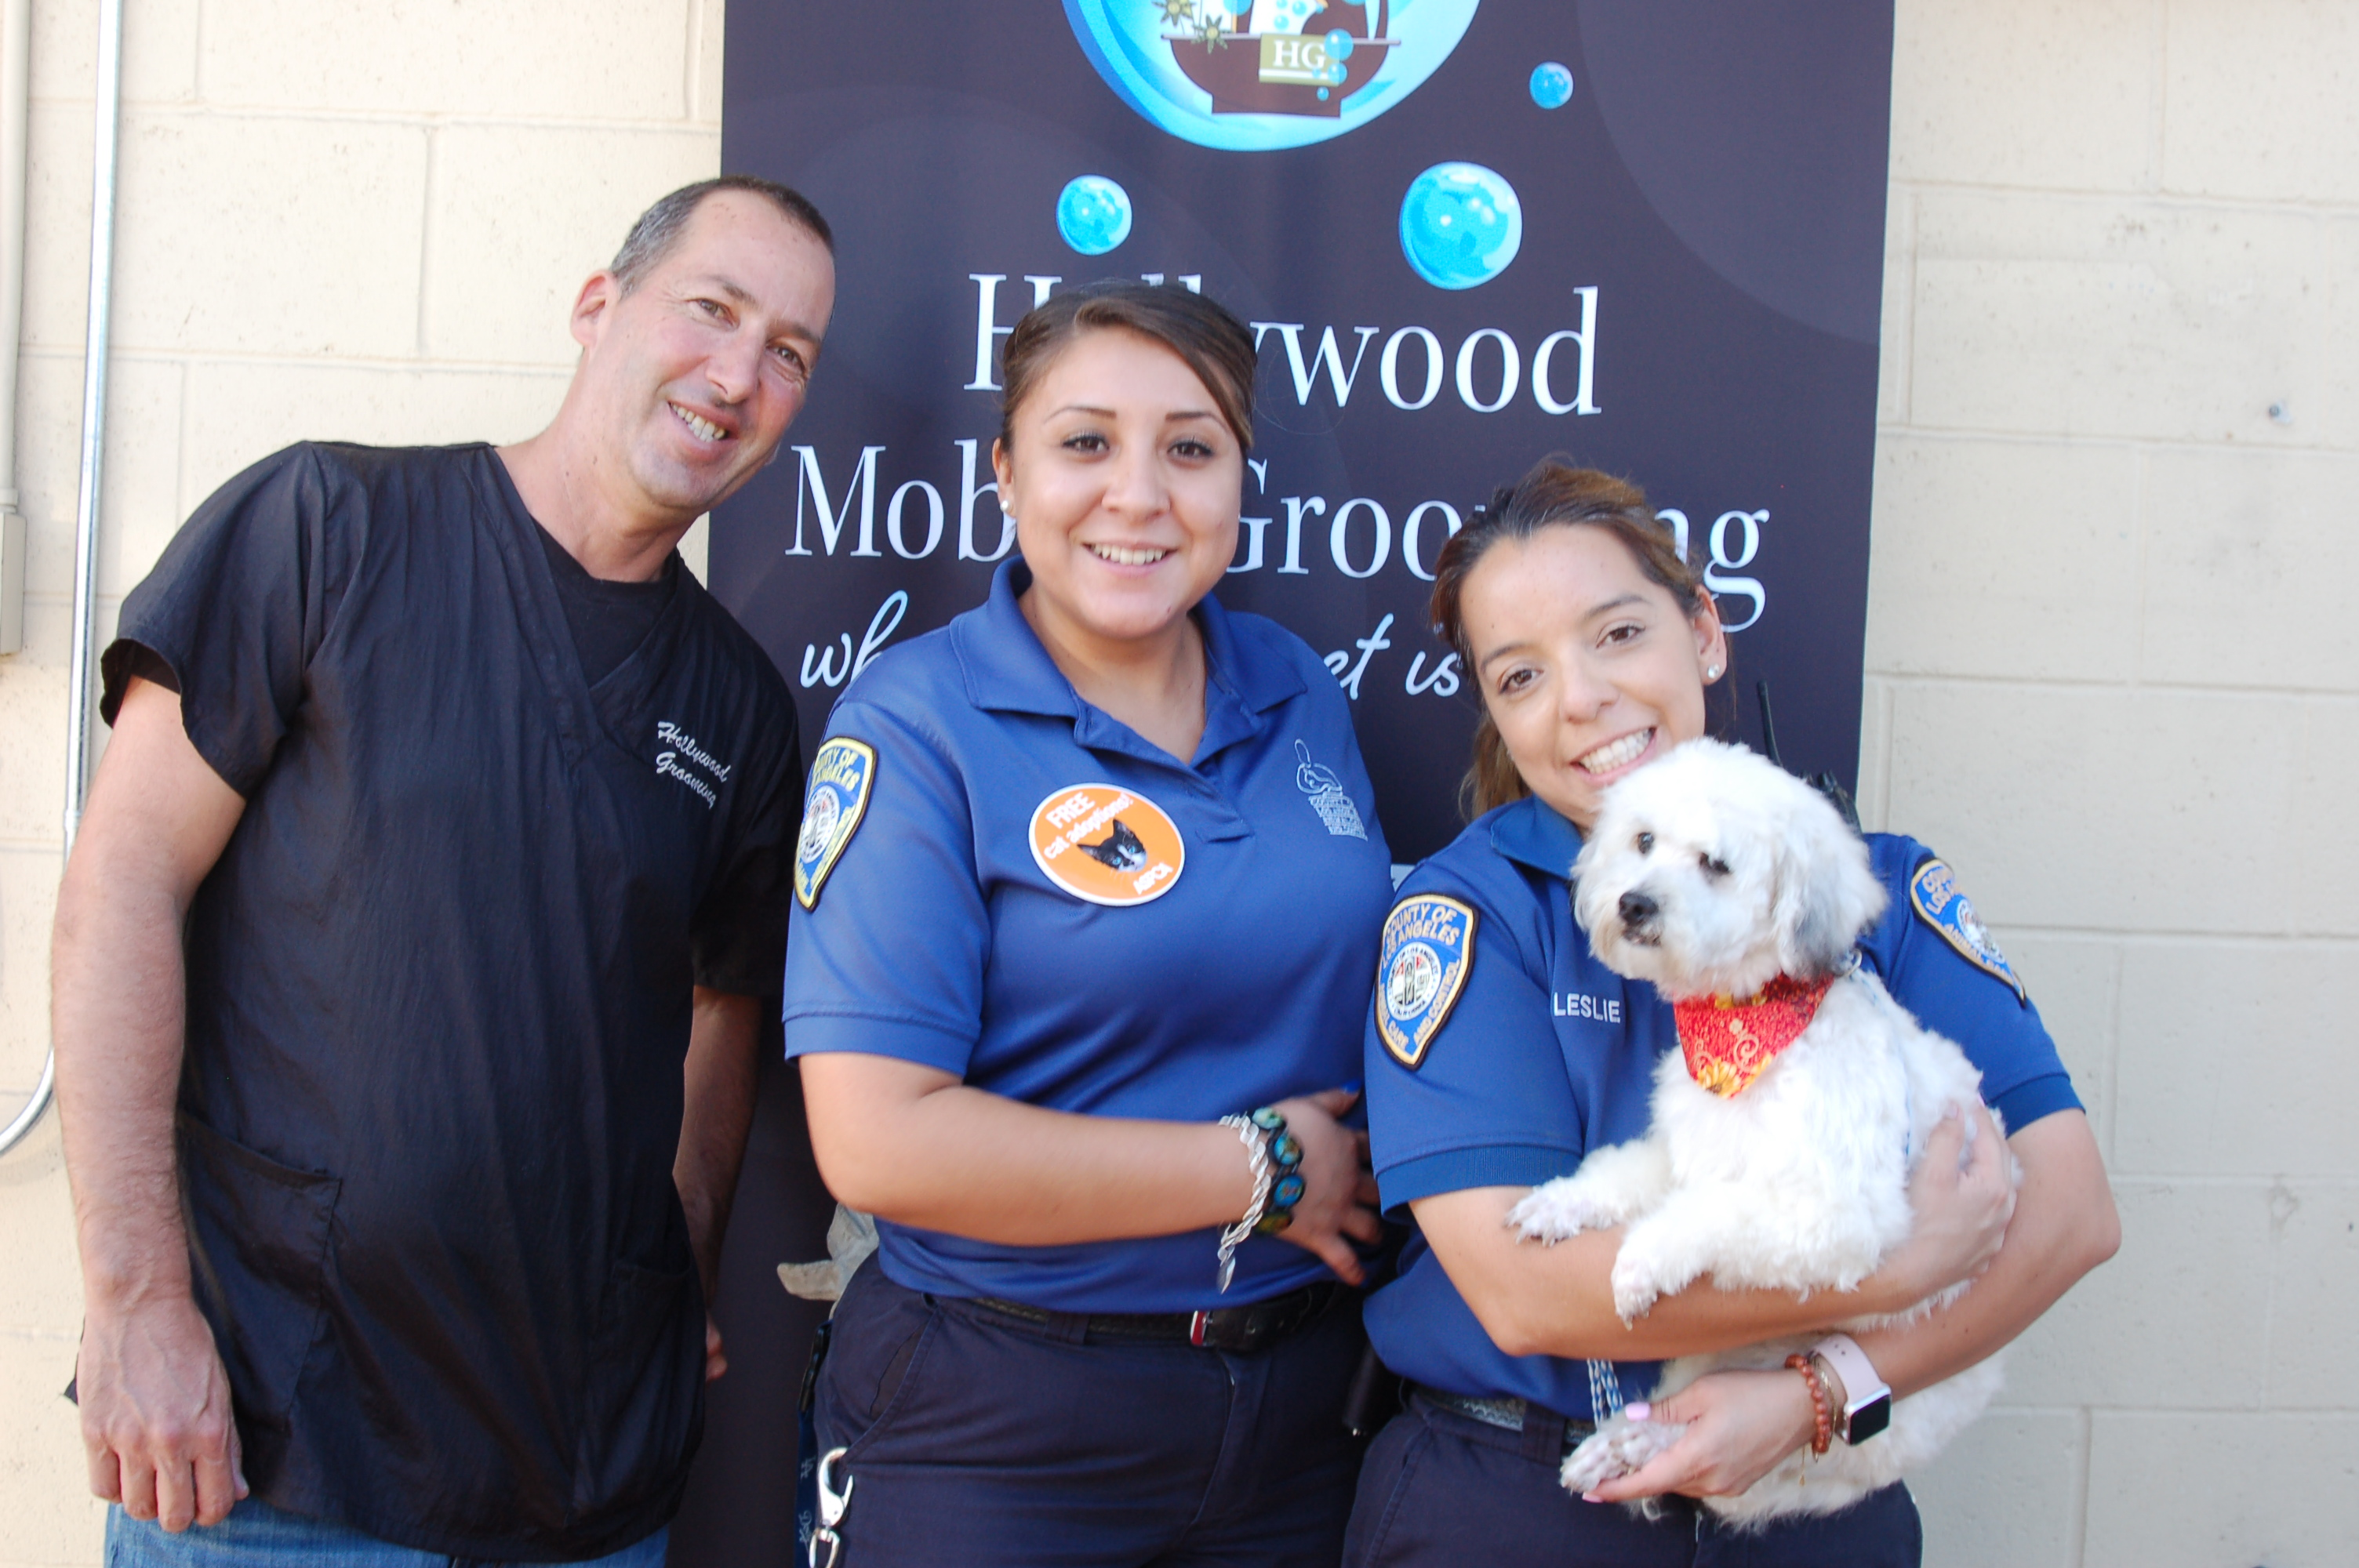 Chuck and team members hold a dog at a Community Event.